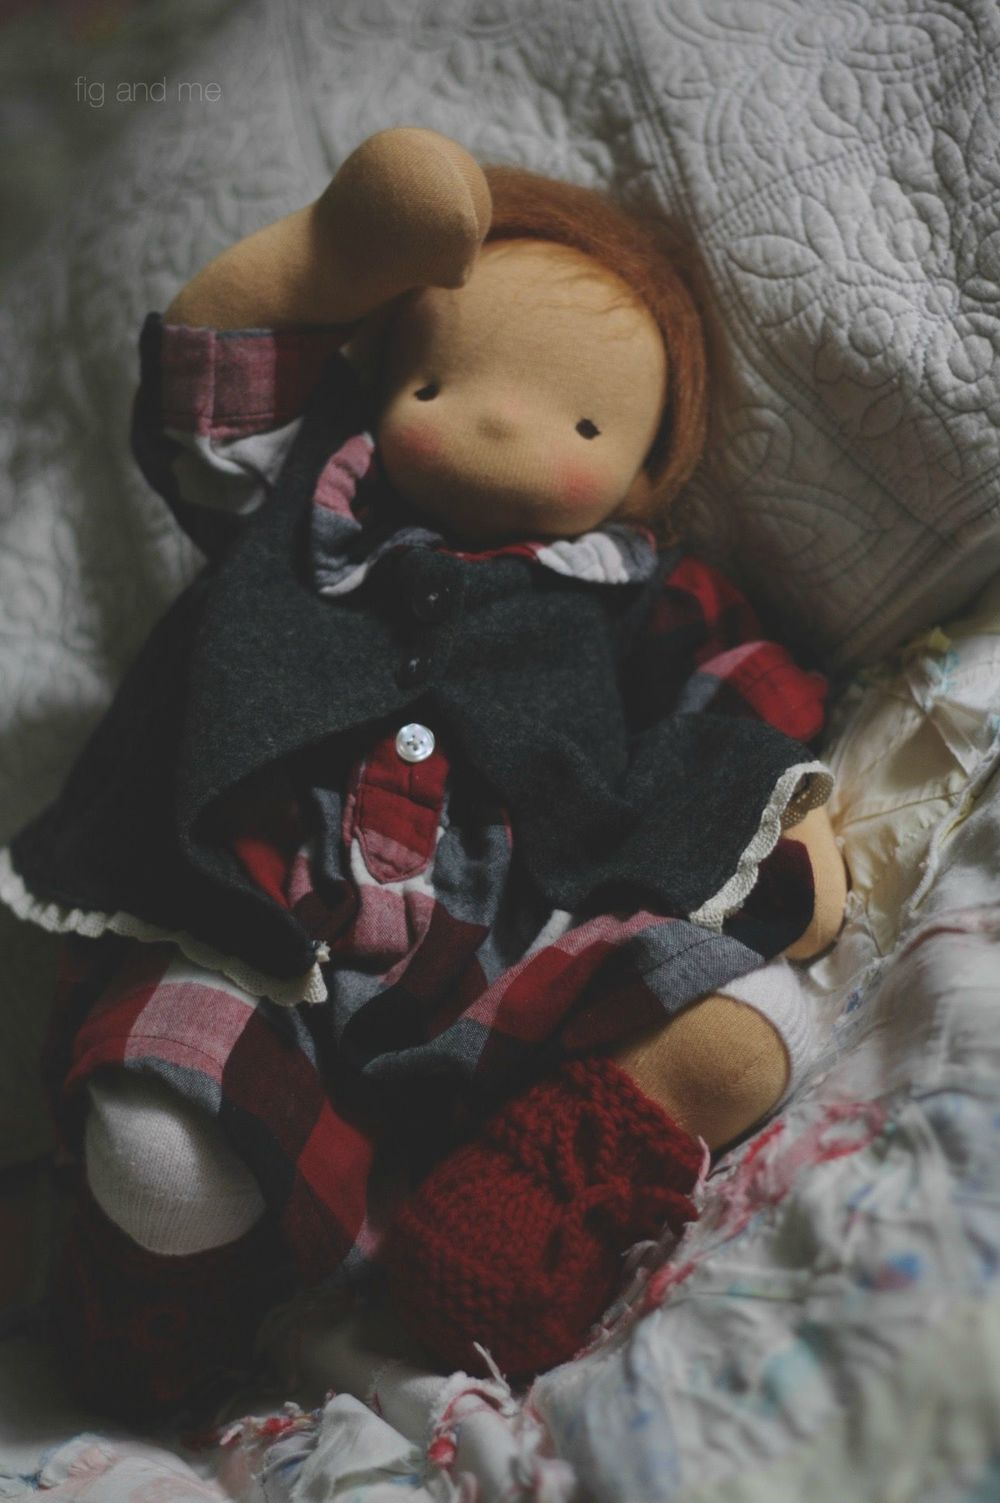 Baby Emma Jean, a natural fiber art doll ready for play, in her cotton double-gauze dress, cashmere pants, knitted baby booties and merino tea jacket. By Fig and me.